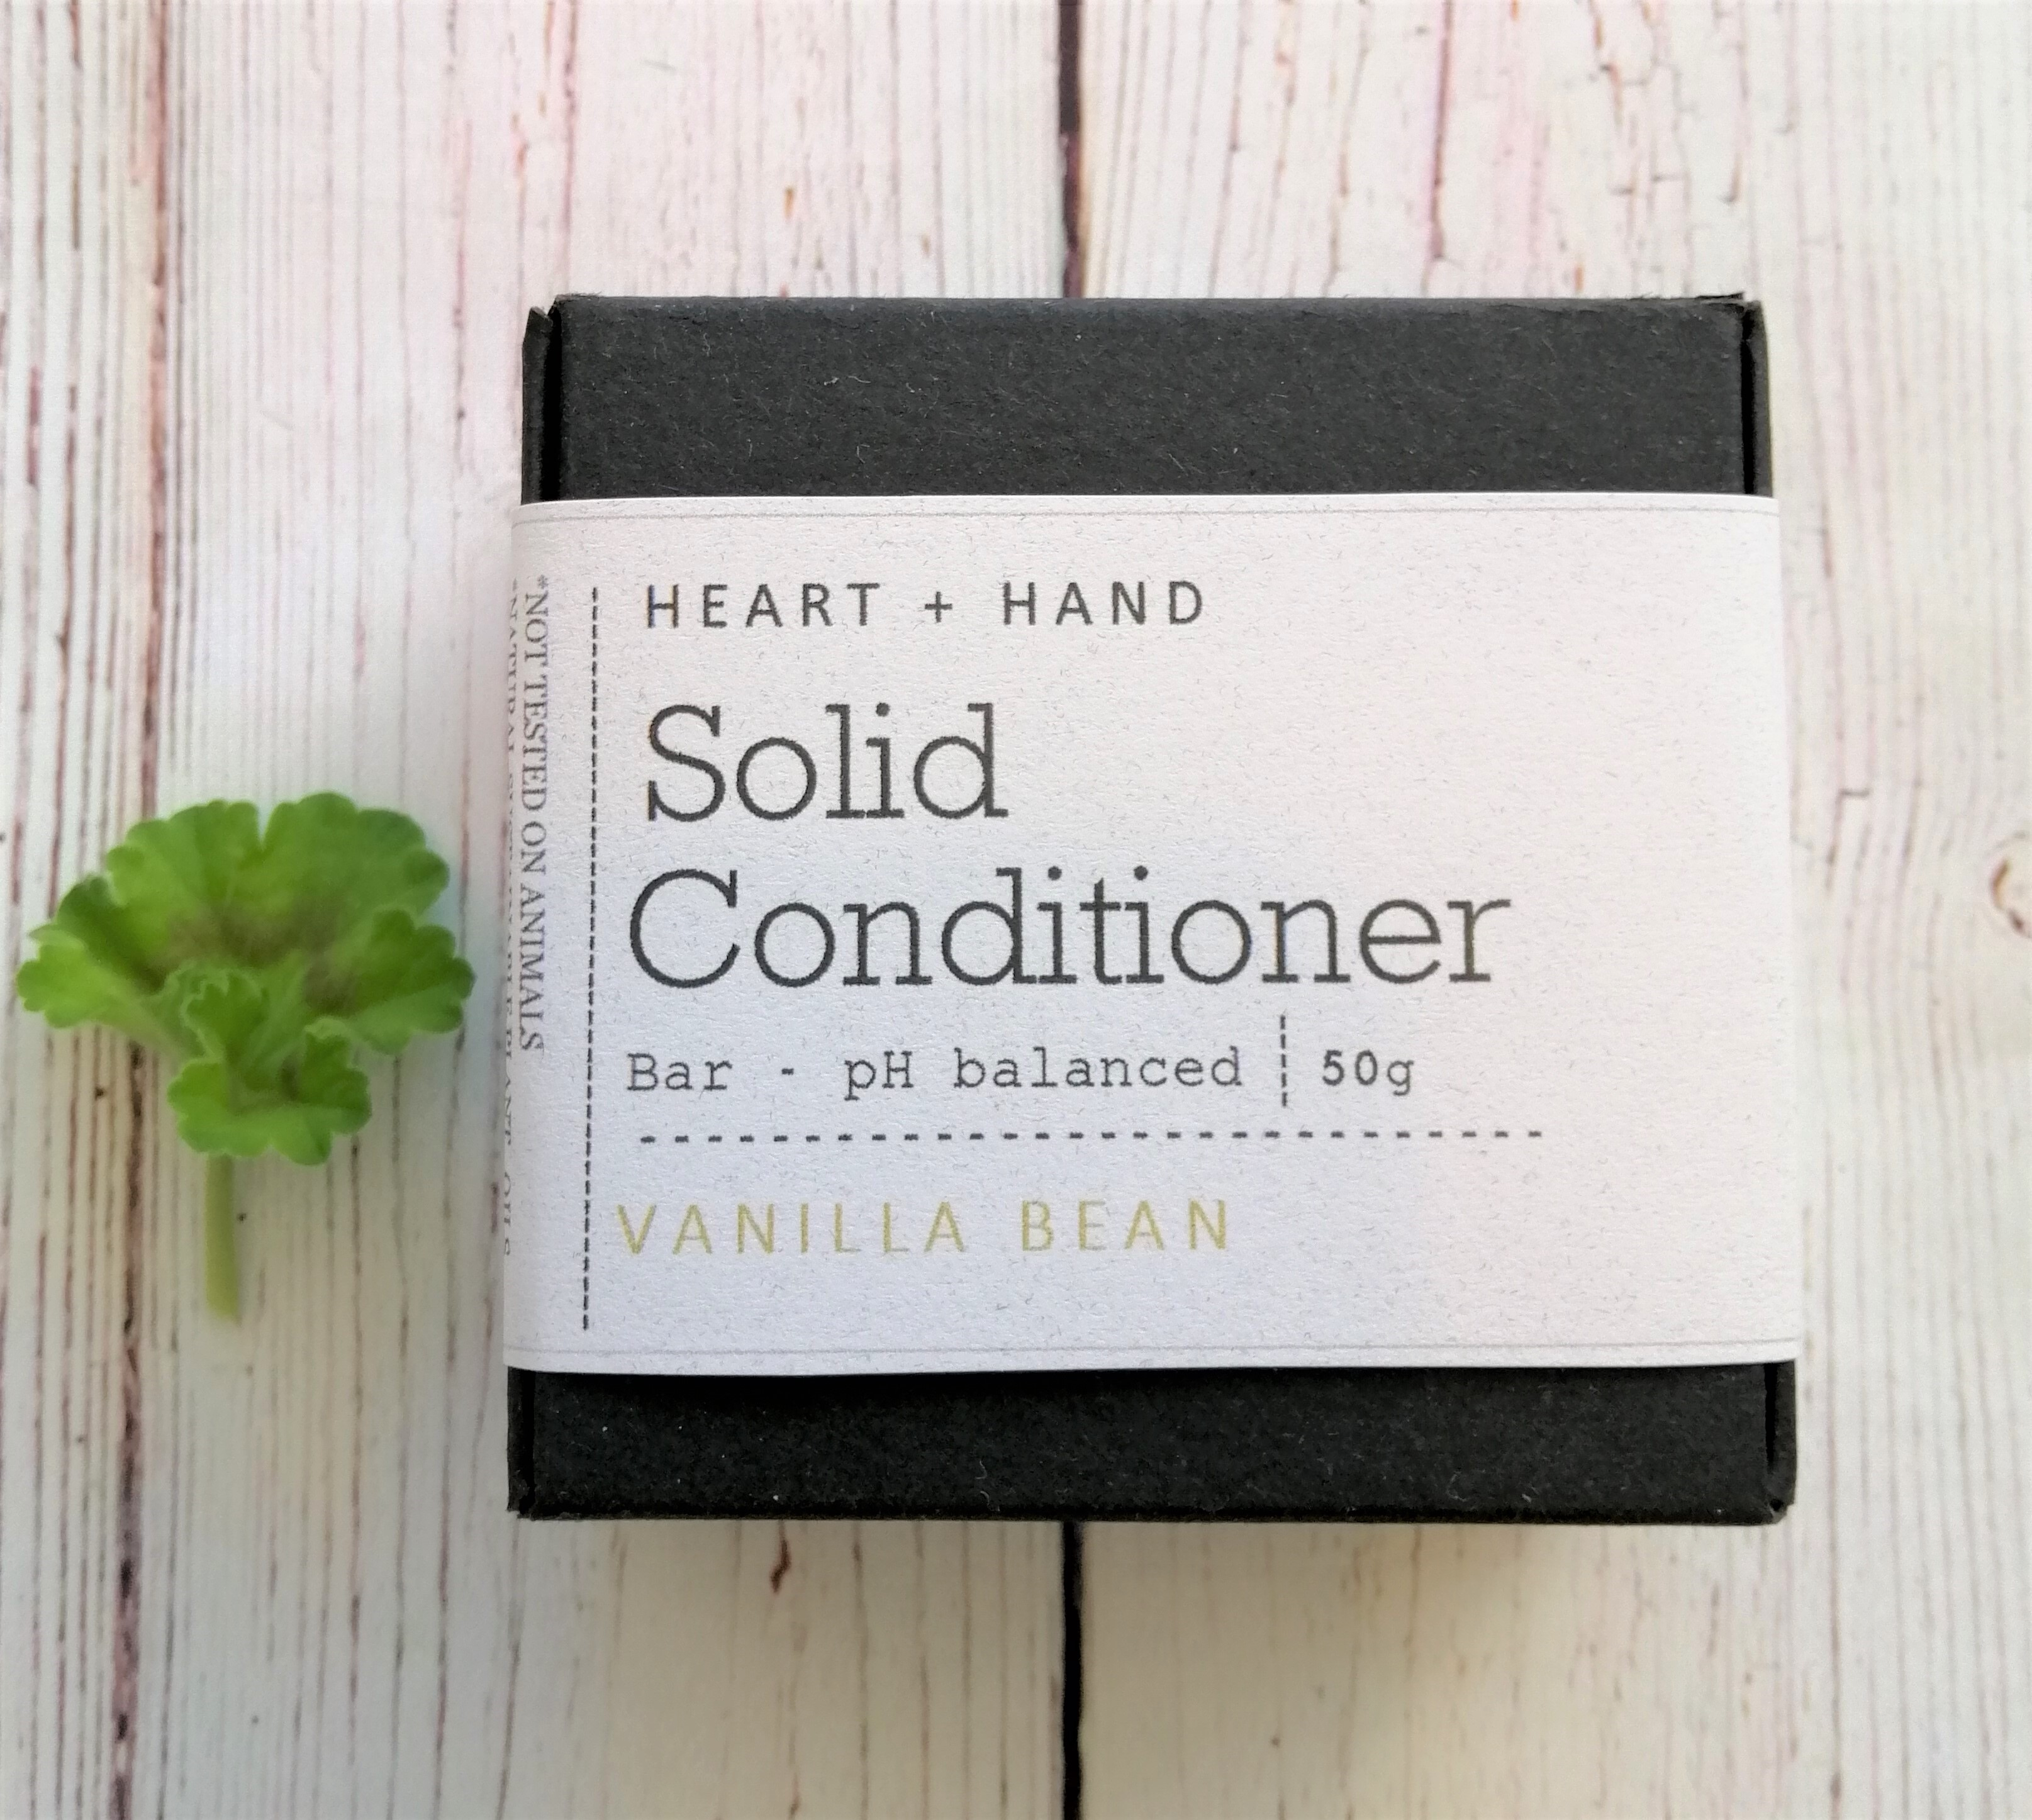 Vanilla bean conditioner 2